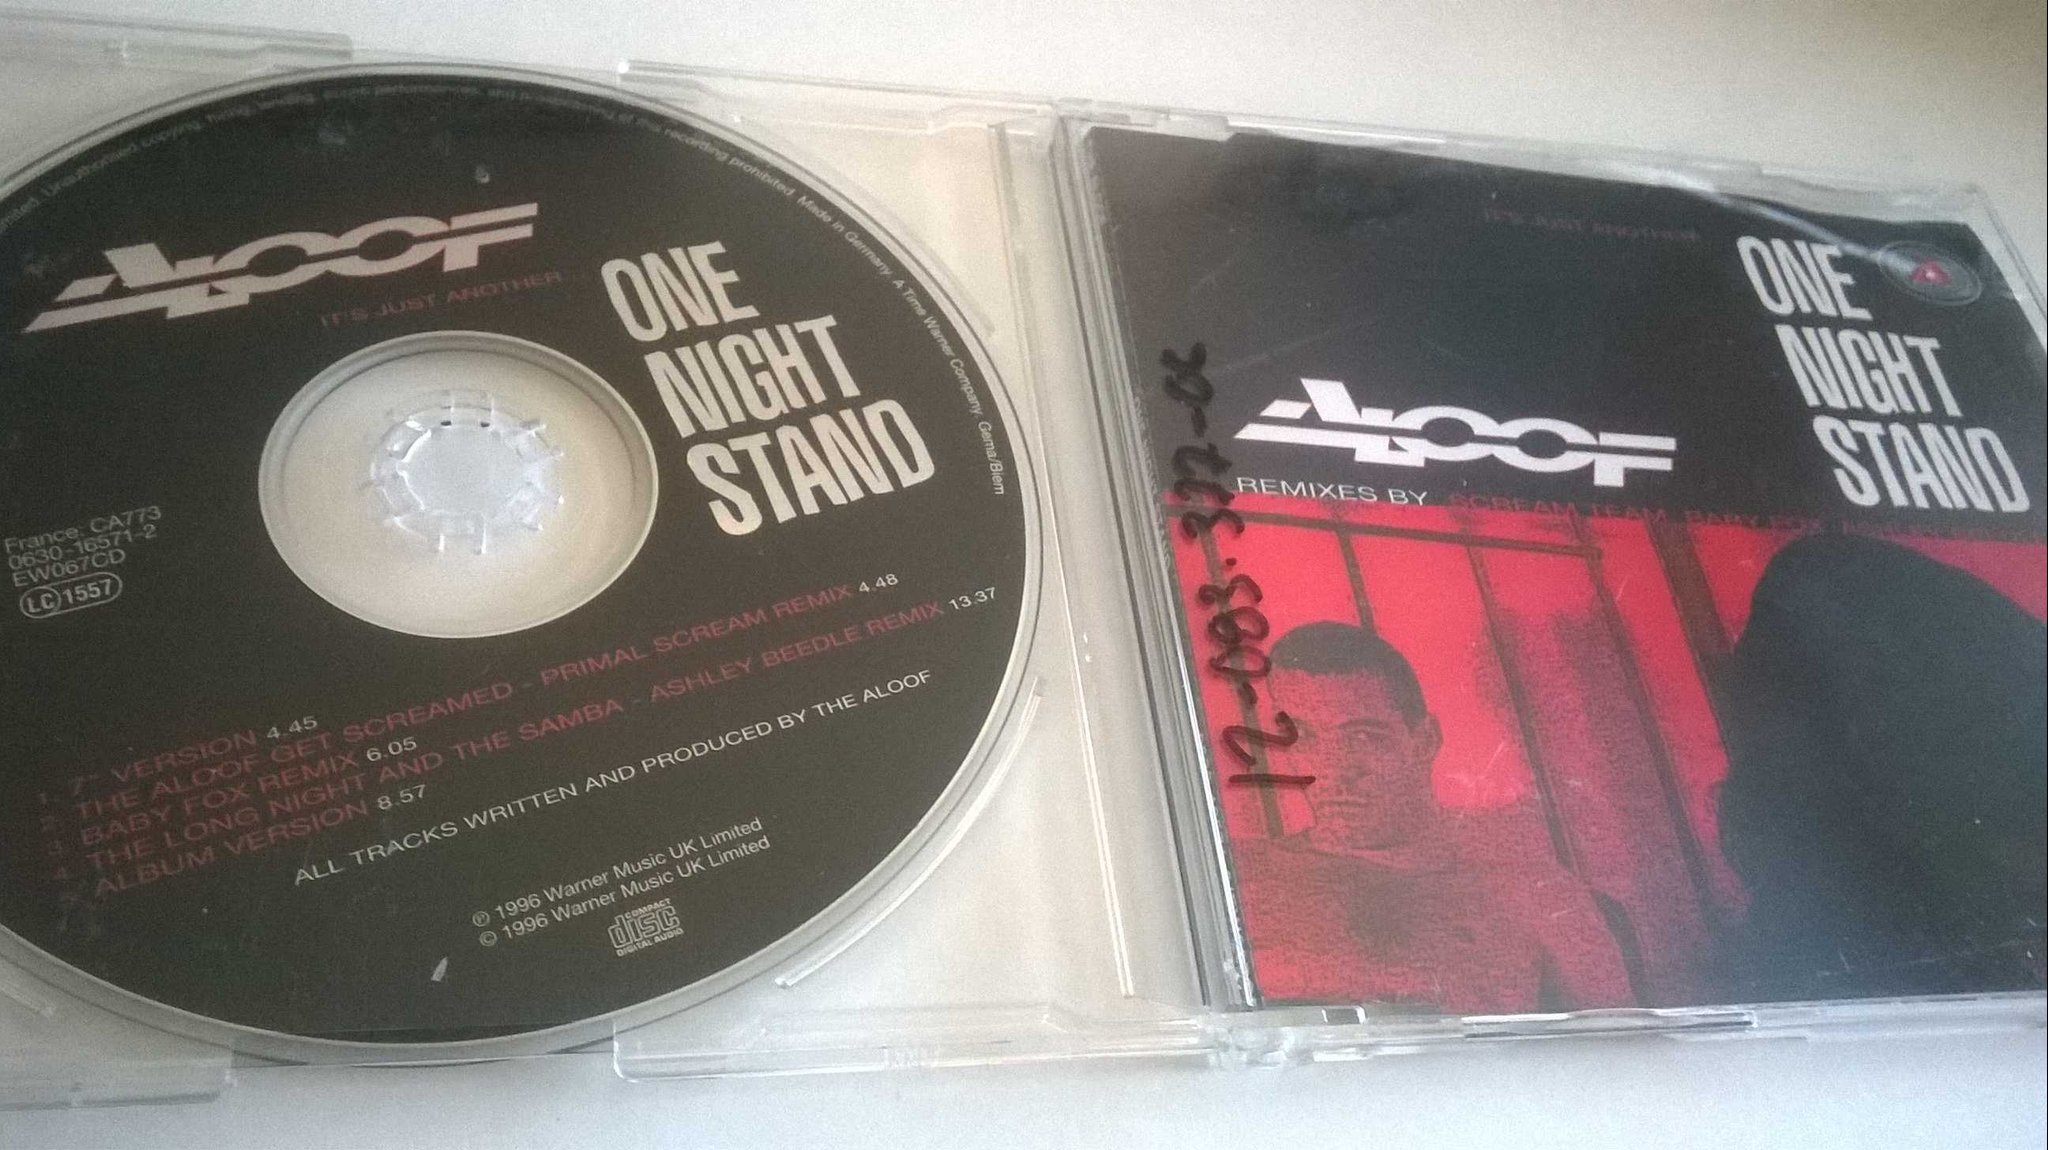 Aloof - One Night Stand, CD, Single